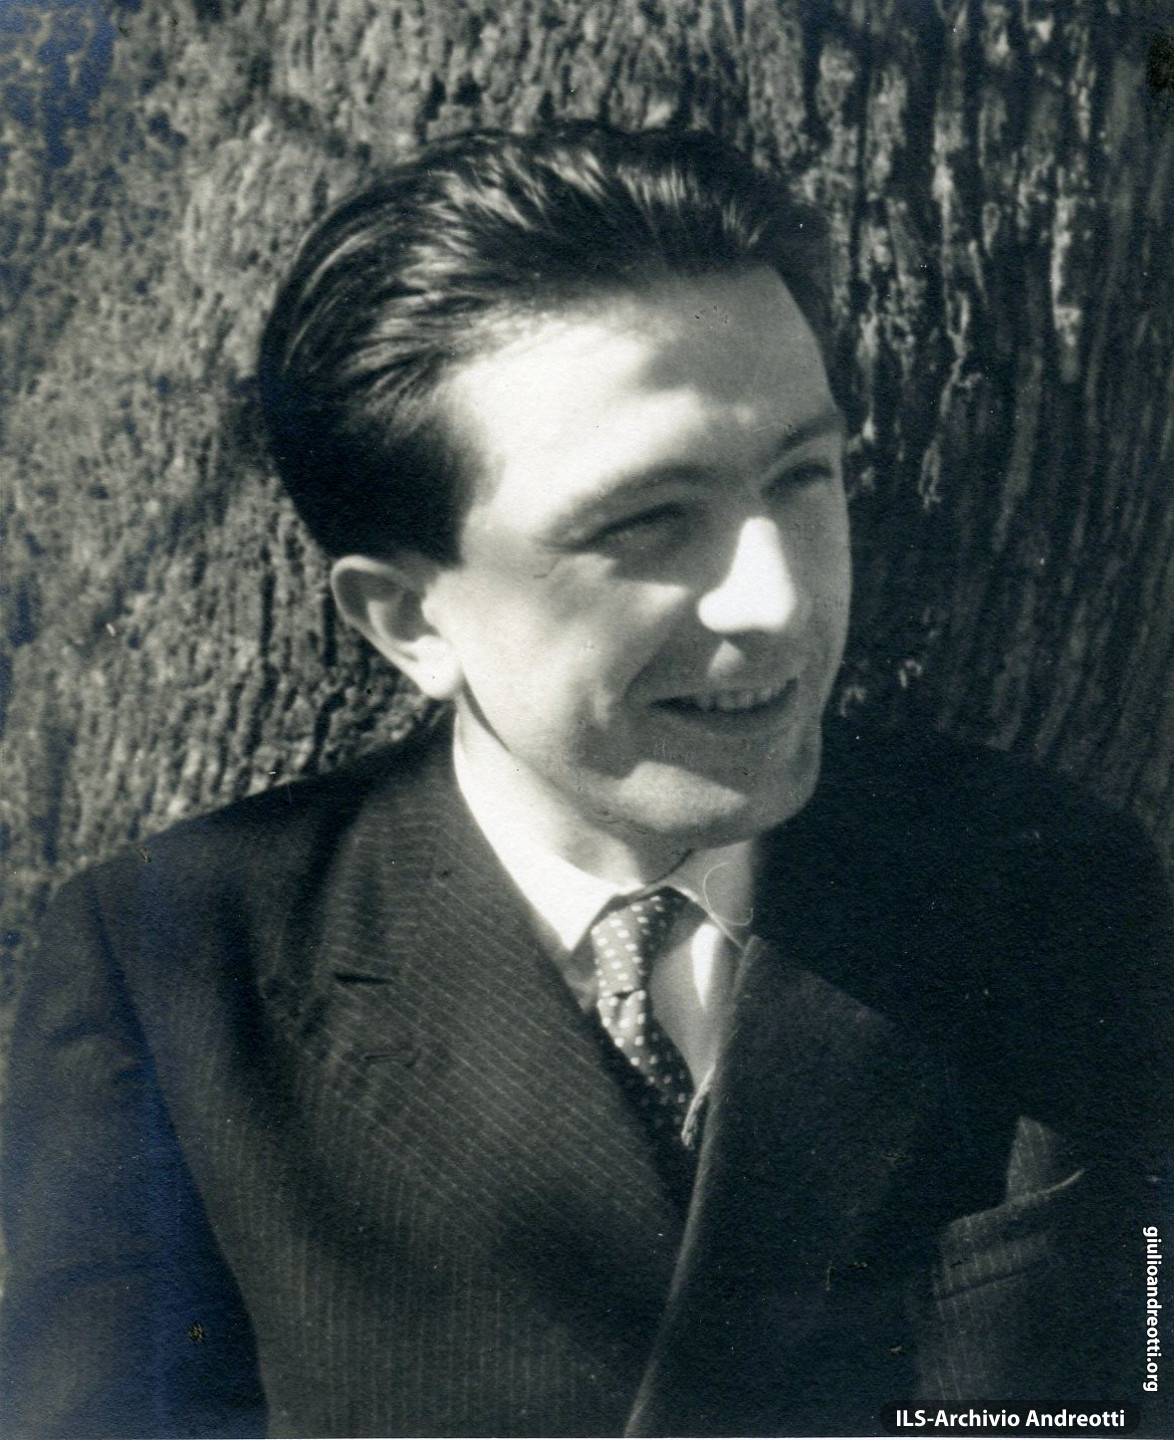 Andreotti nell'aprile 1948.